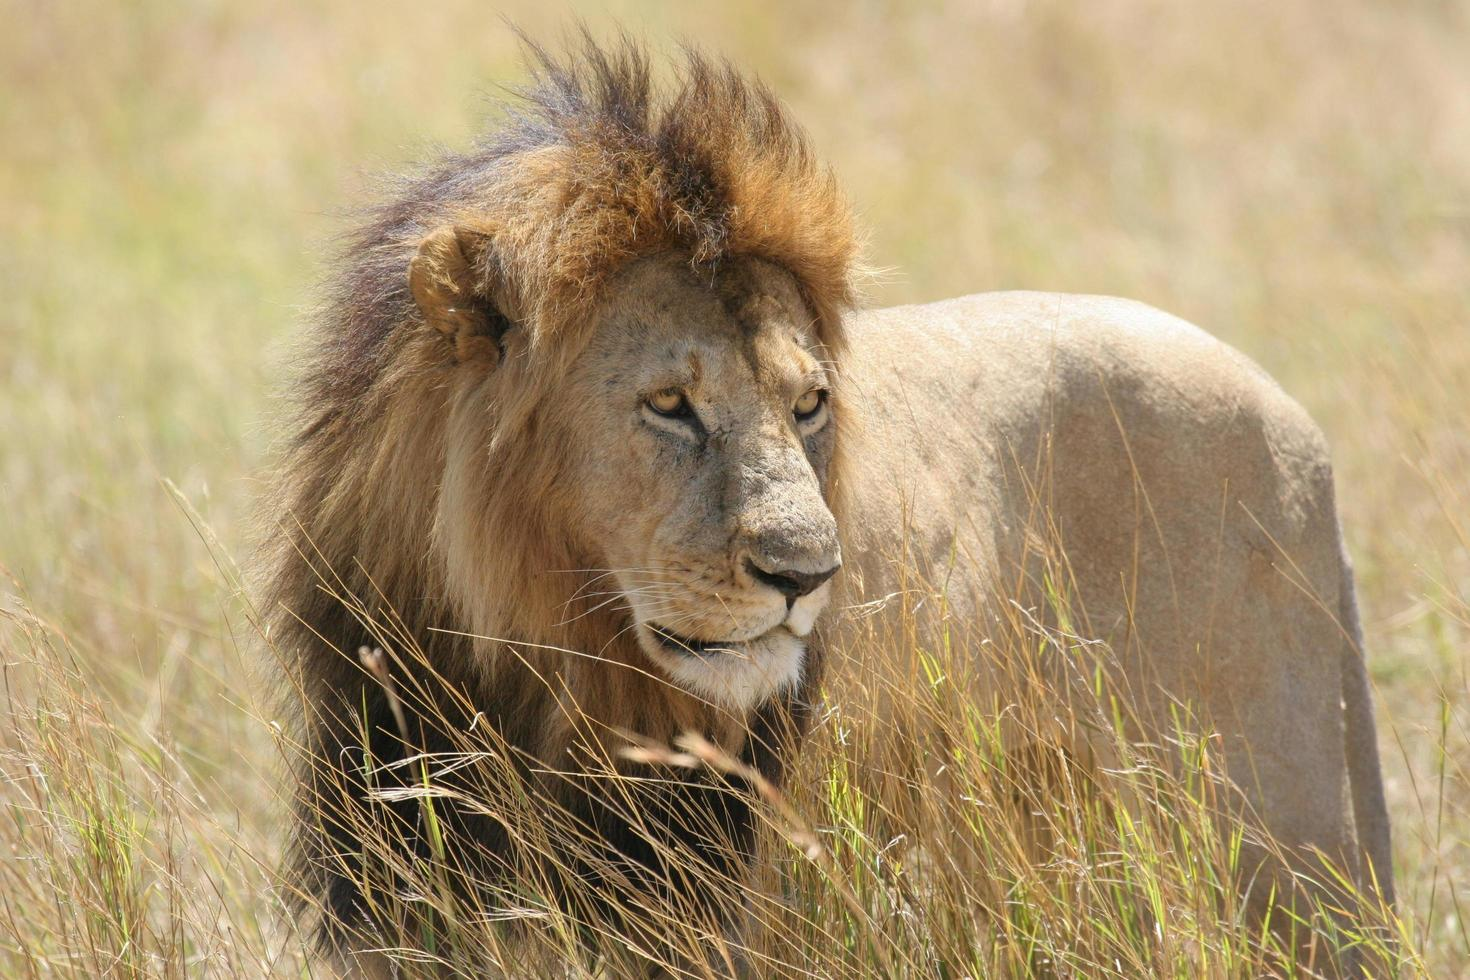 Wild male lion standing in a field photo